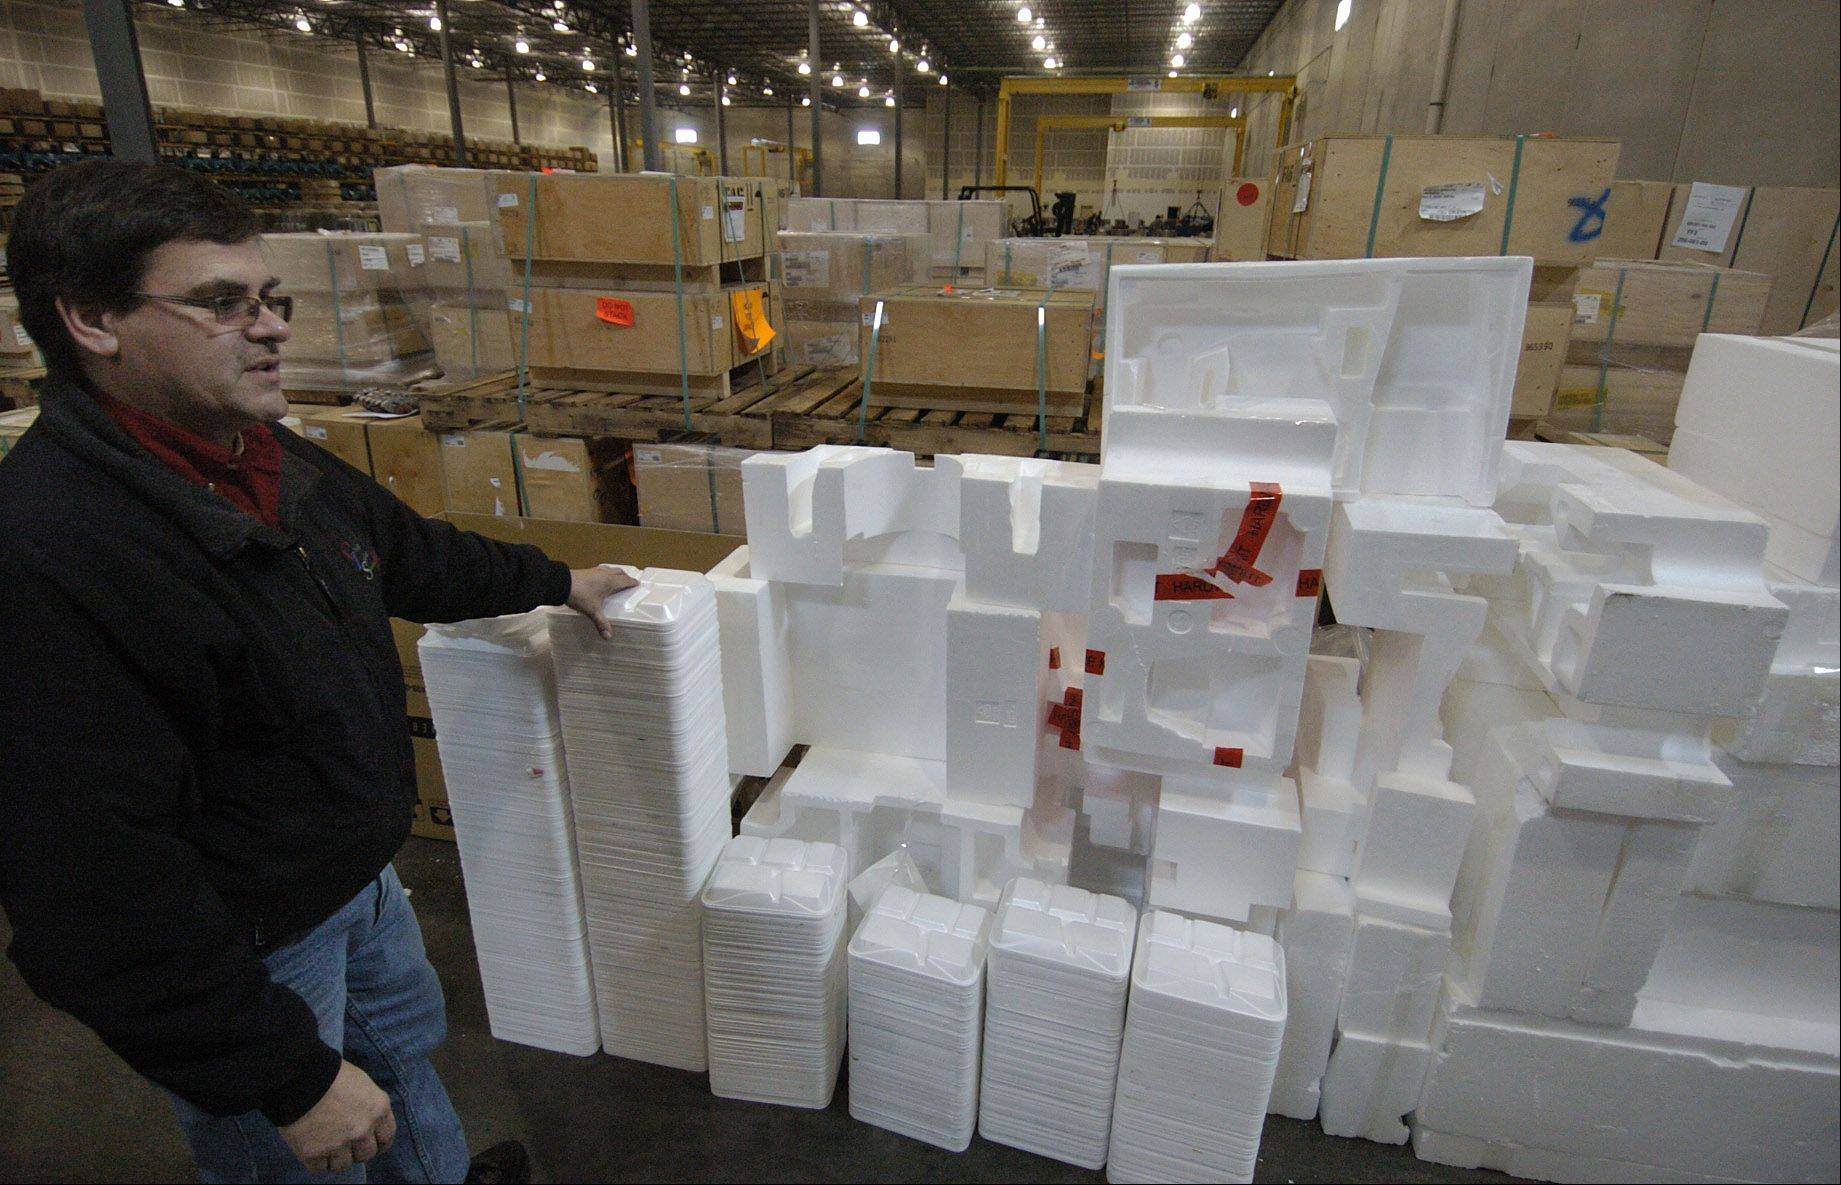 Ken Santowski of Lakewood is among the recipients of the 2012 McHenry County Green Awards. In this file photo, he shows a pile of Styrofoam destined for recycling. He owns Chicago Logistic Service in Elgin.